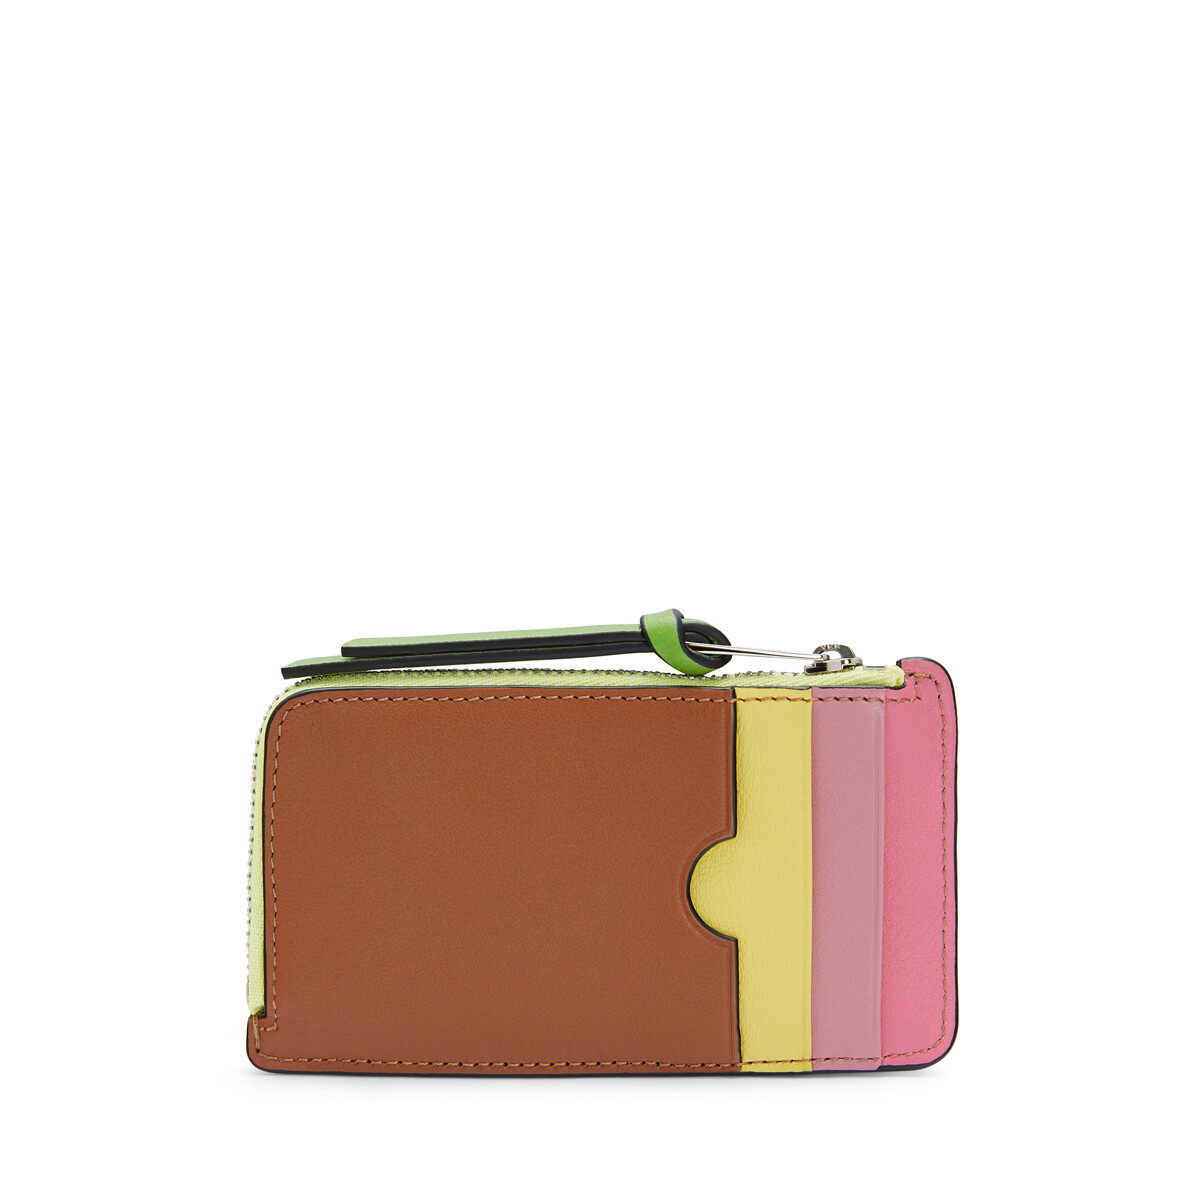 LOEWE Coind Card Holder Rainbow Tan/Multicolor front